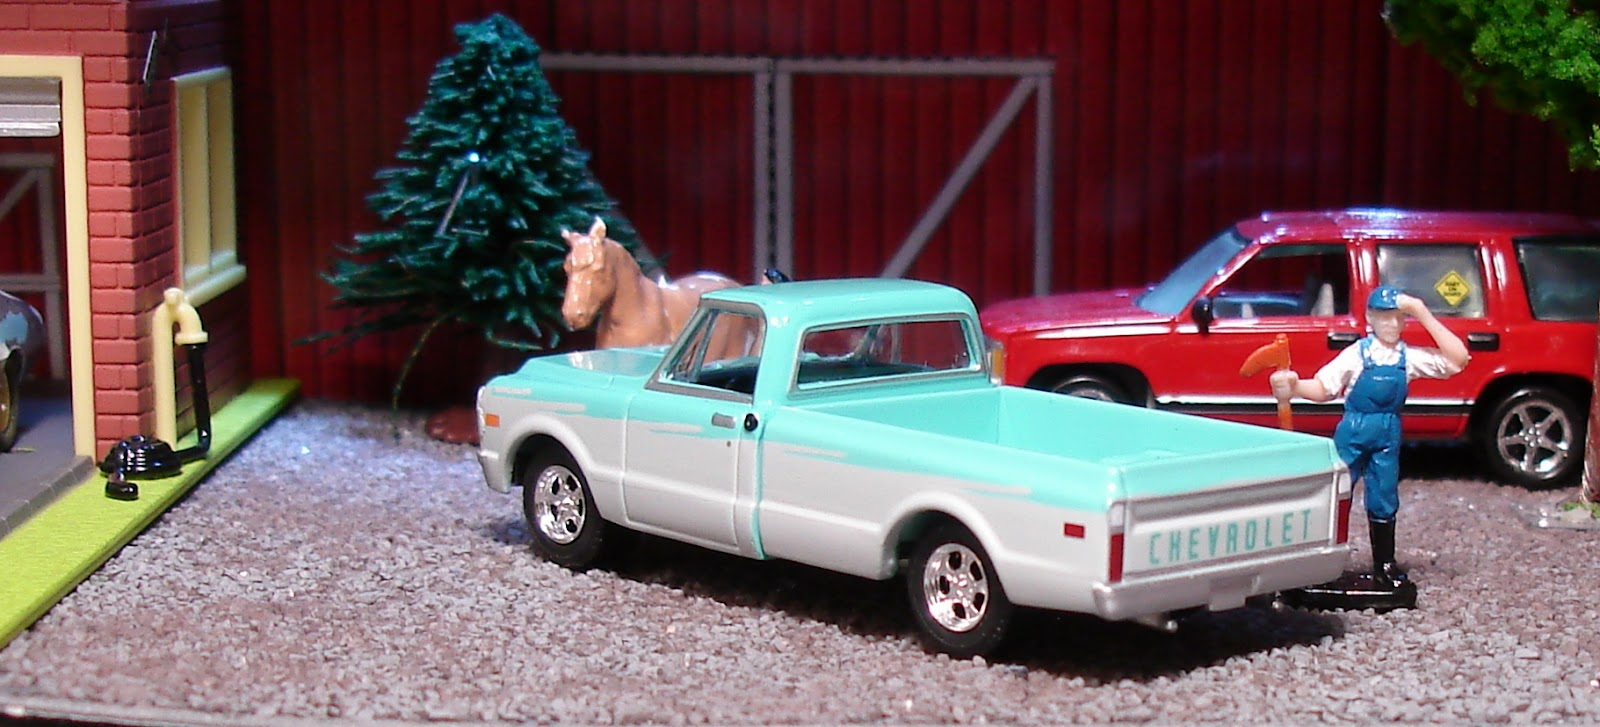 hight resolution of i ve added another greenlight chevy pickup to my collection this 1971 c10 is from the gl muscle series 4 it has a two tone paint job in turquoise and